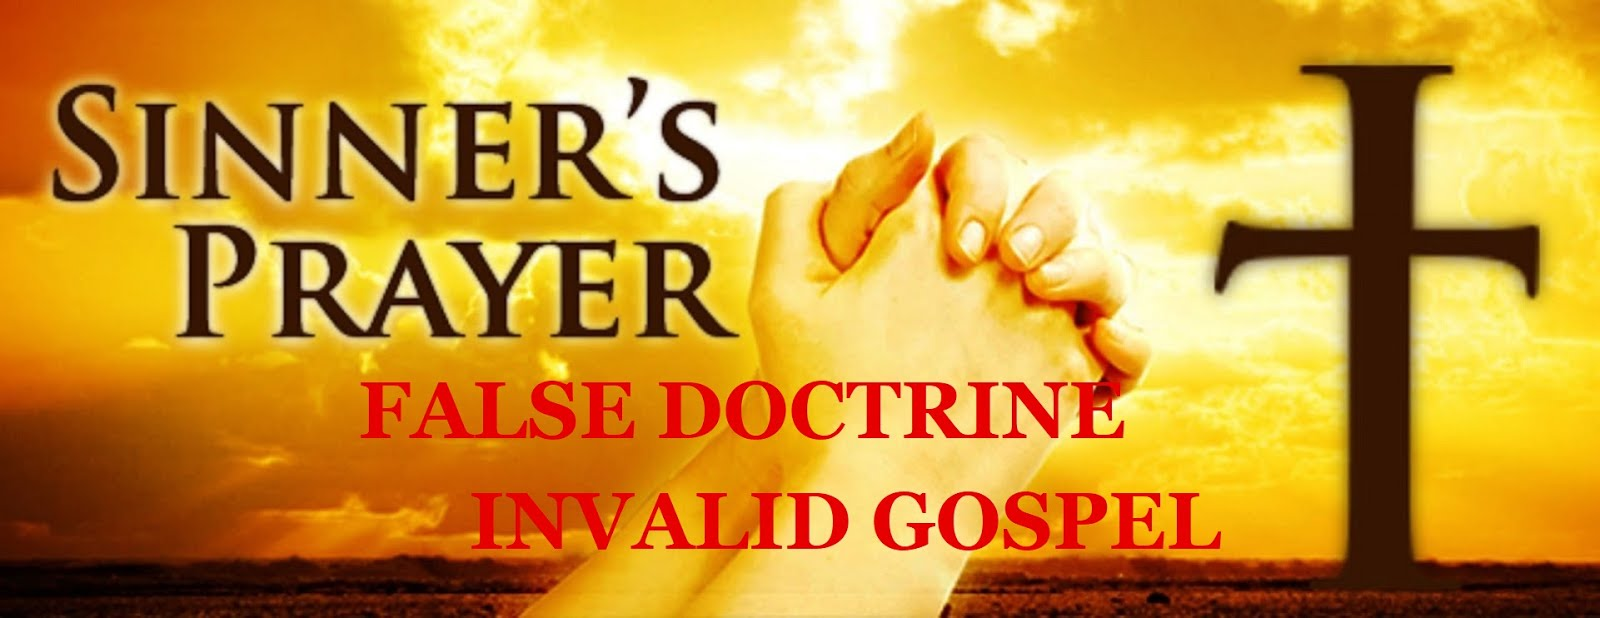 SINNER'S  PRAYER - FALSE DOCTRINE - INVALID GOSPEL